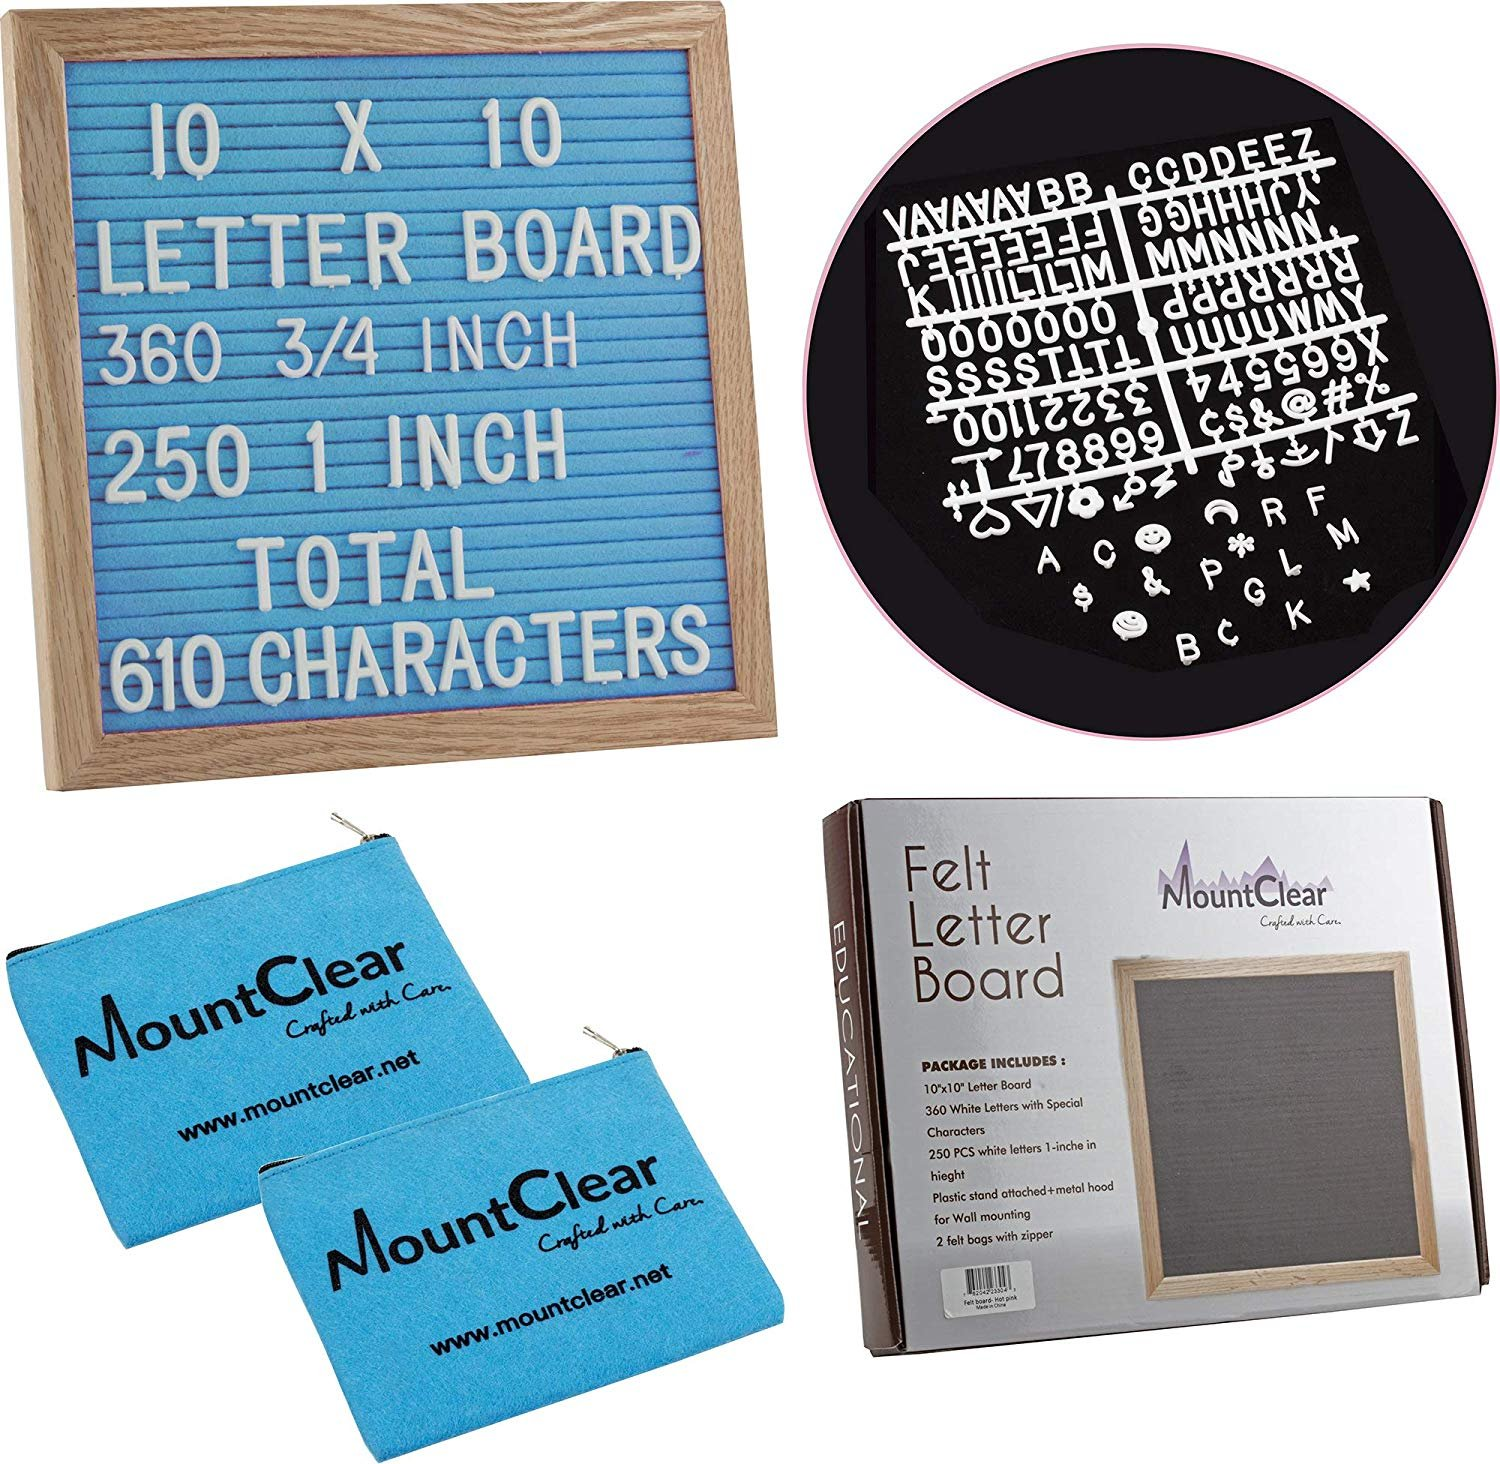 "10"" X 10"" Felt Letter Board with 360 Changeable White Letters – Two Zippered Pouches- Plastic Stand and Metal Hook for Easy Display (Blue)"